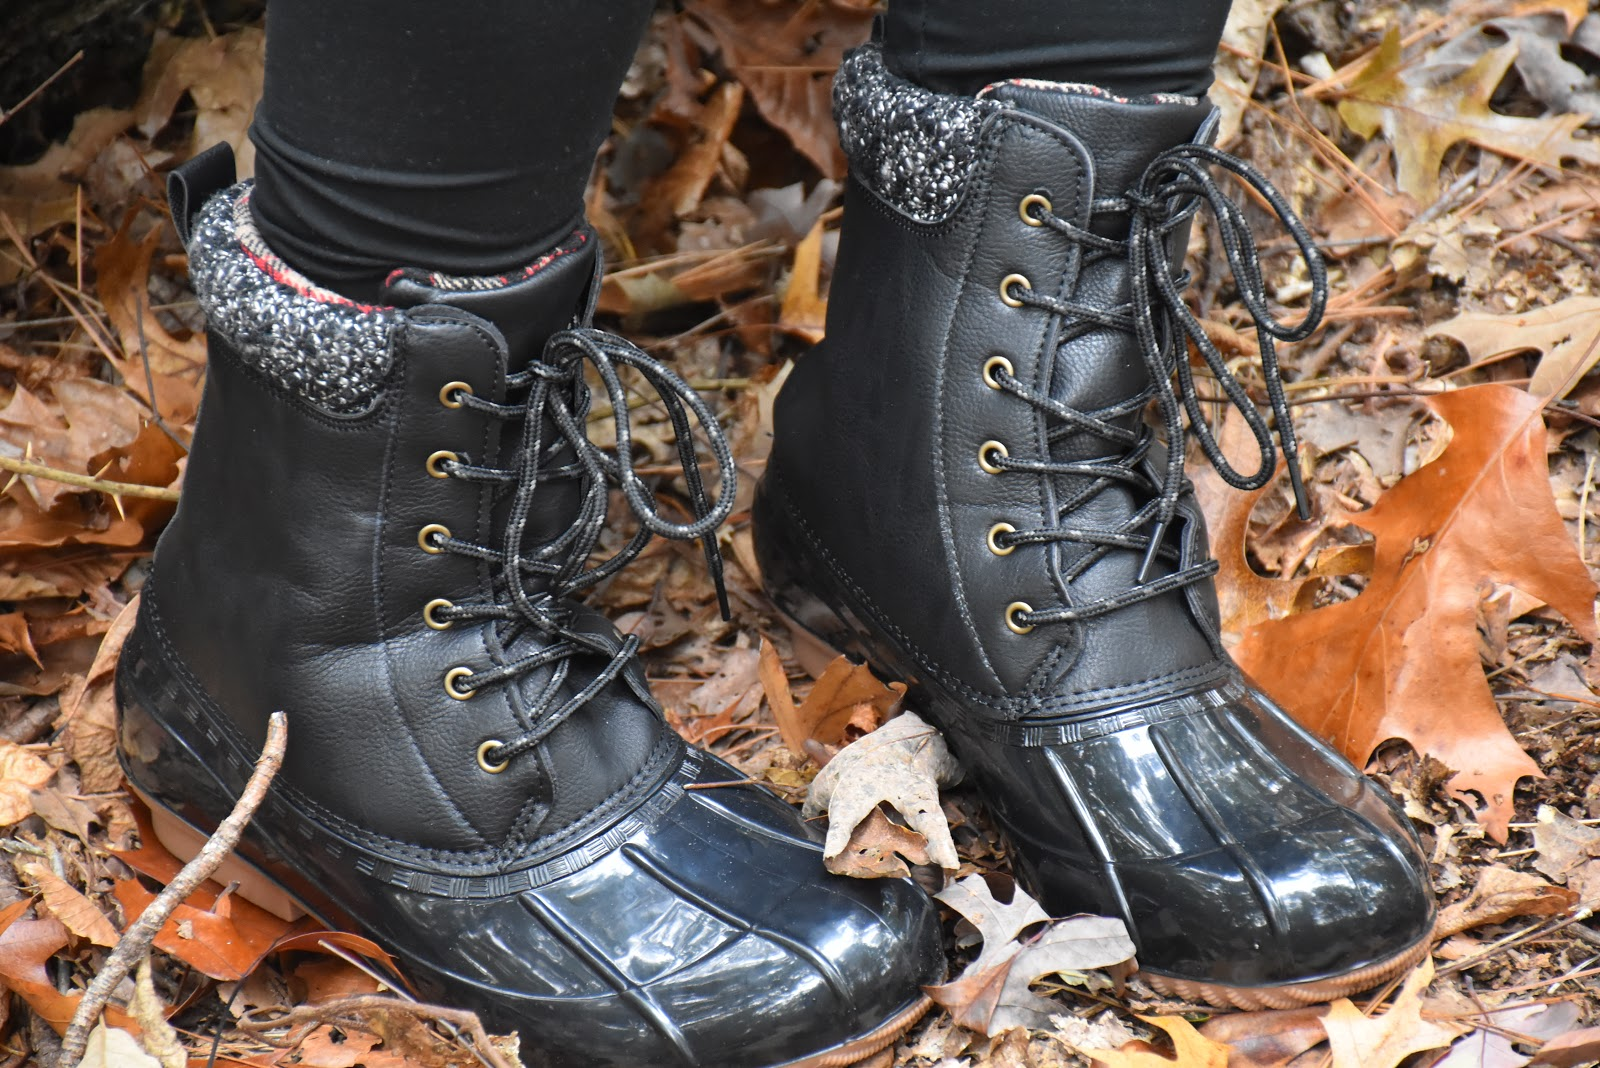 Cheap High-Quality Duck Boots for Women from JustFab